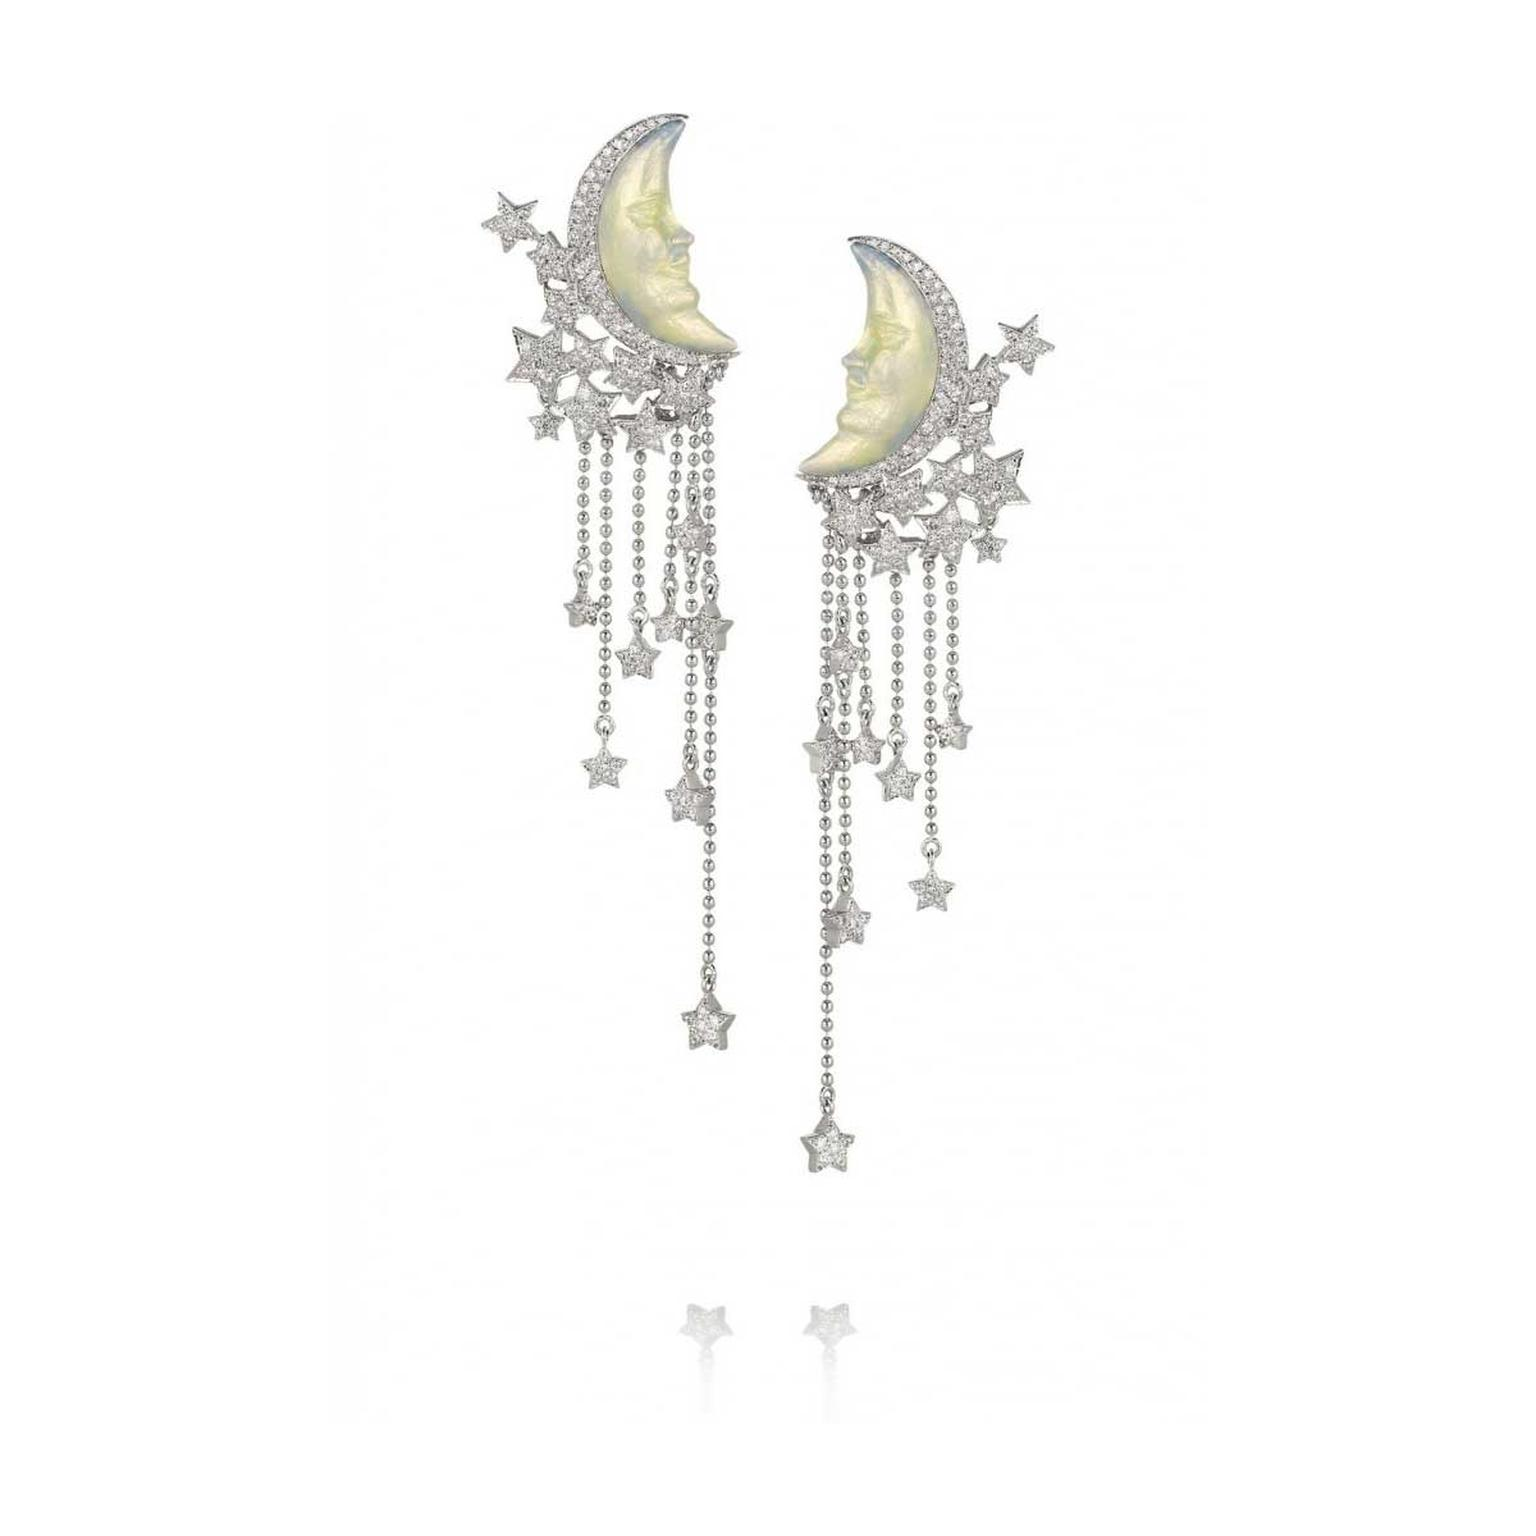 Lydia Courteille Moon earrings